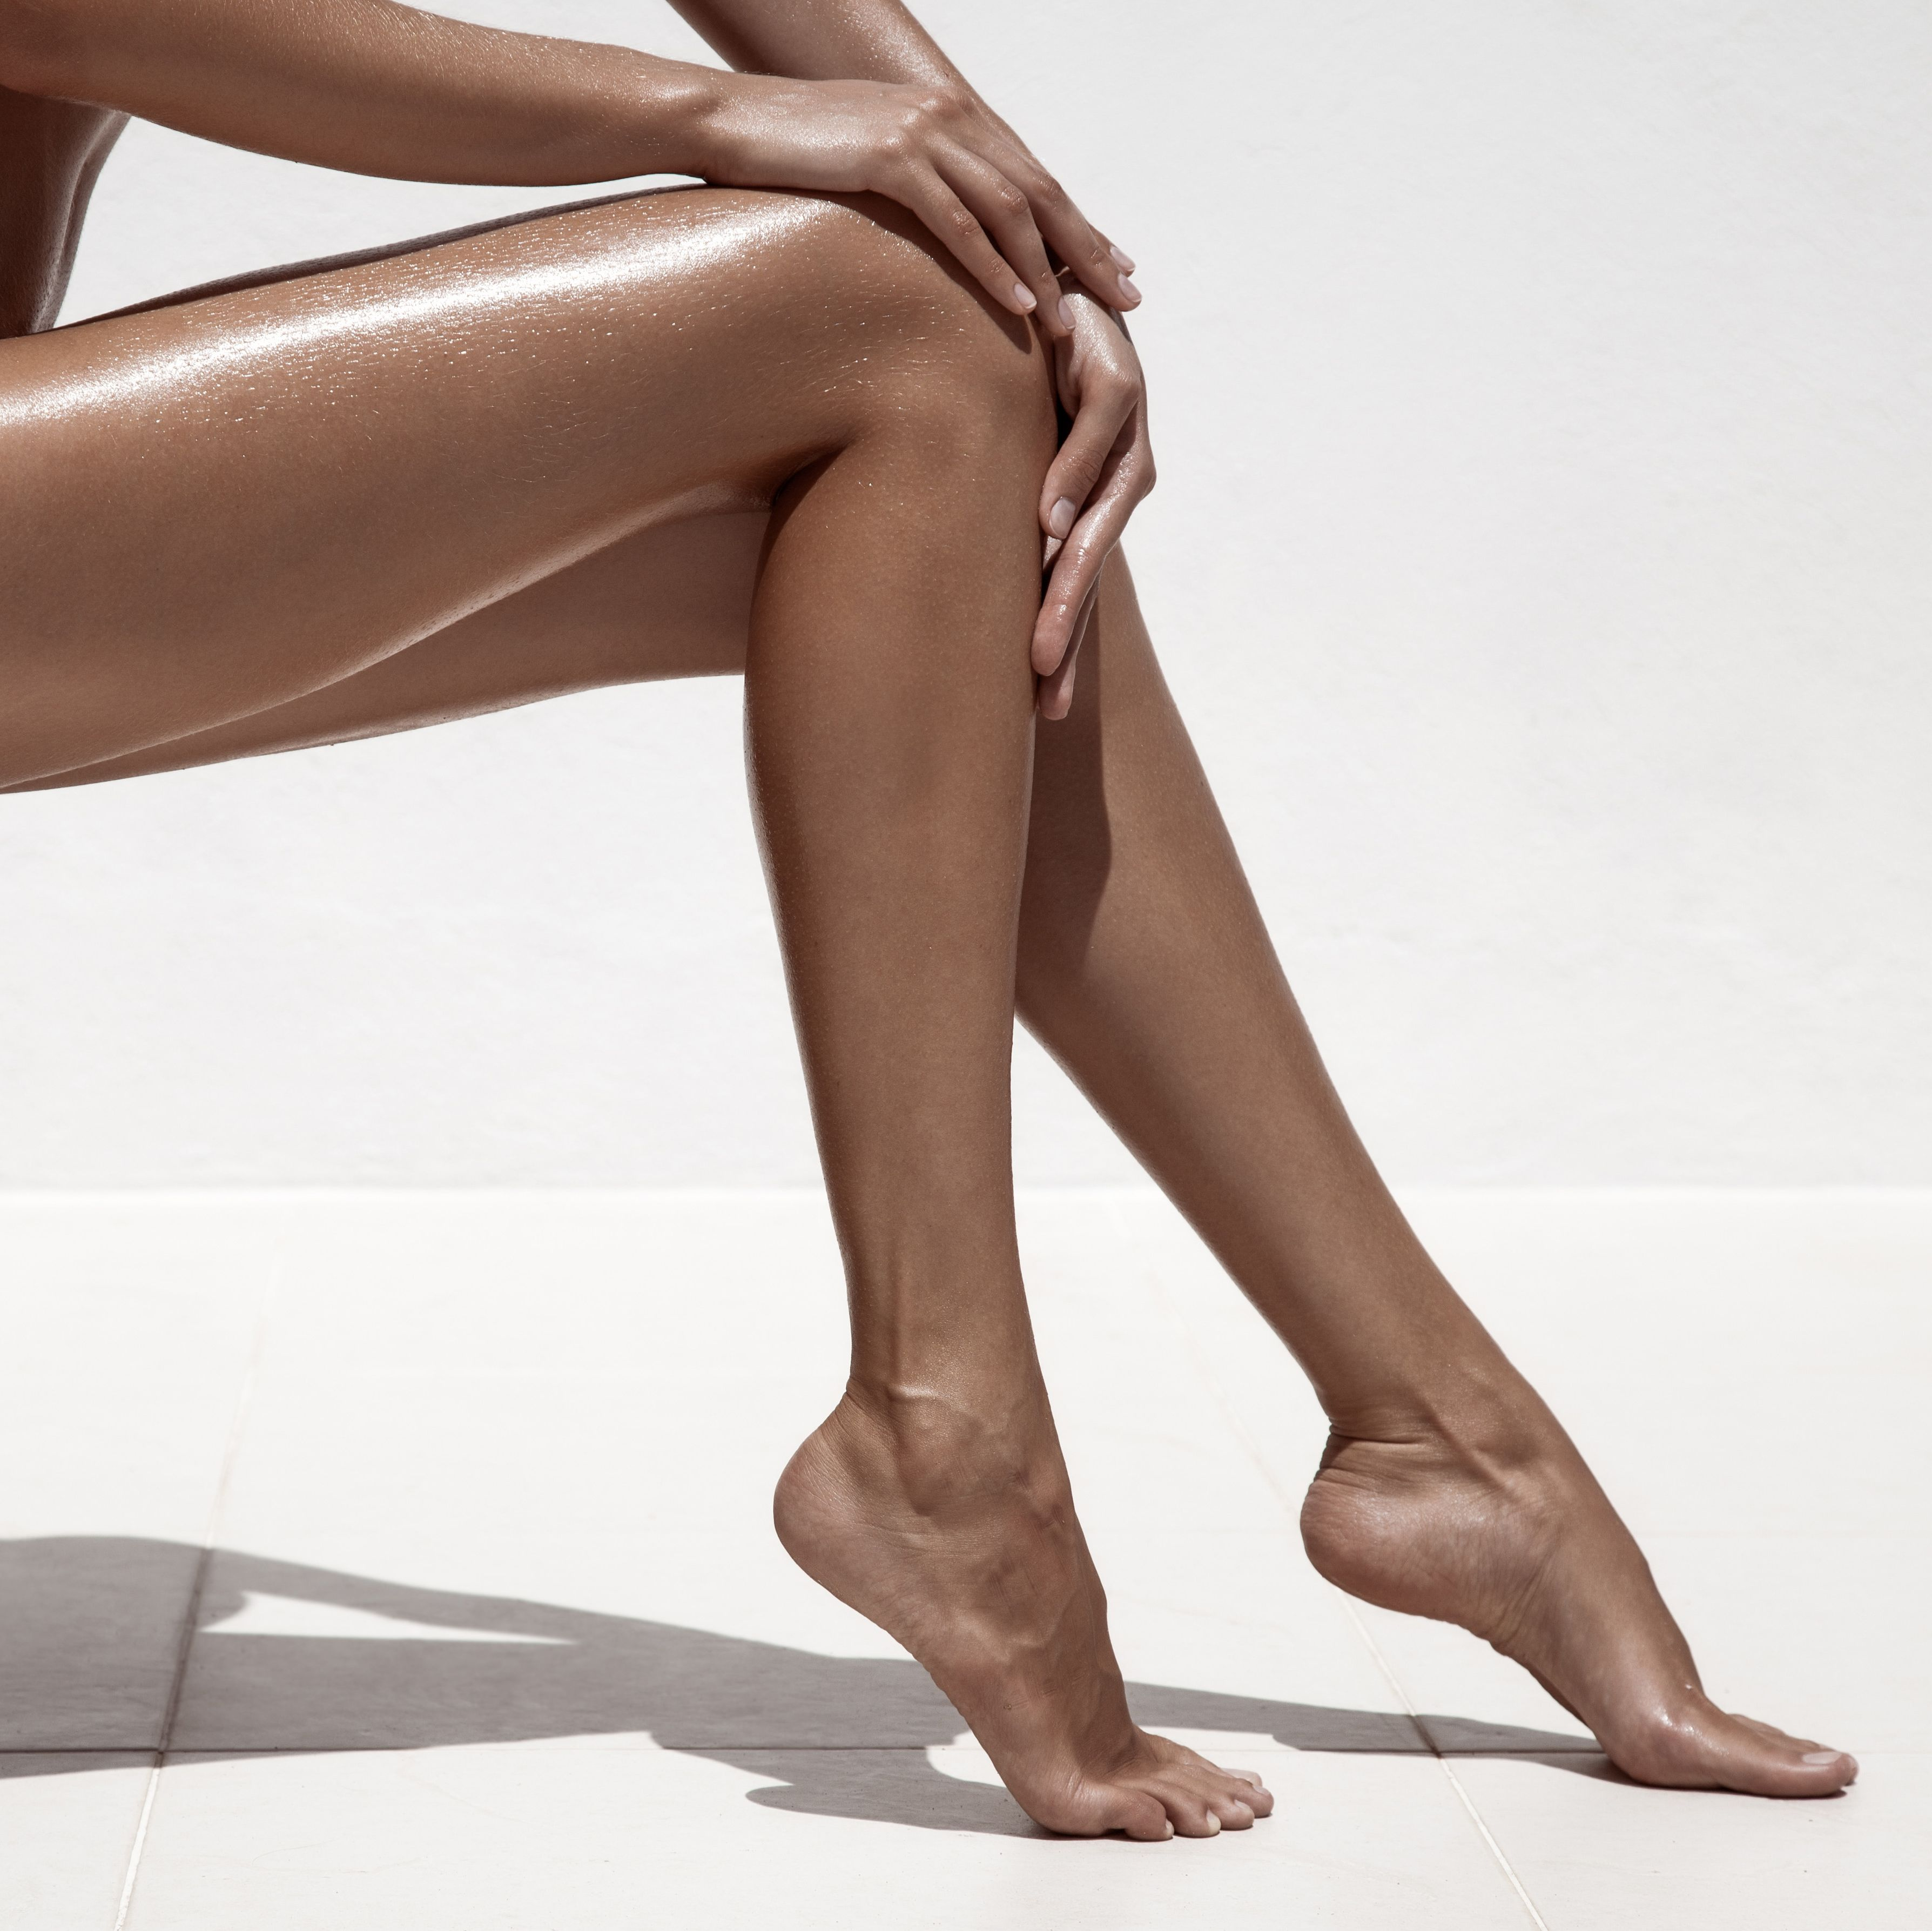 Laser Hair Removal Treatment Guide To Permanent Painless Body Hair